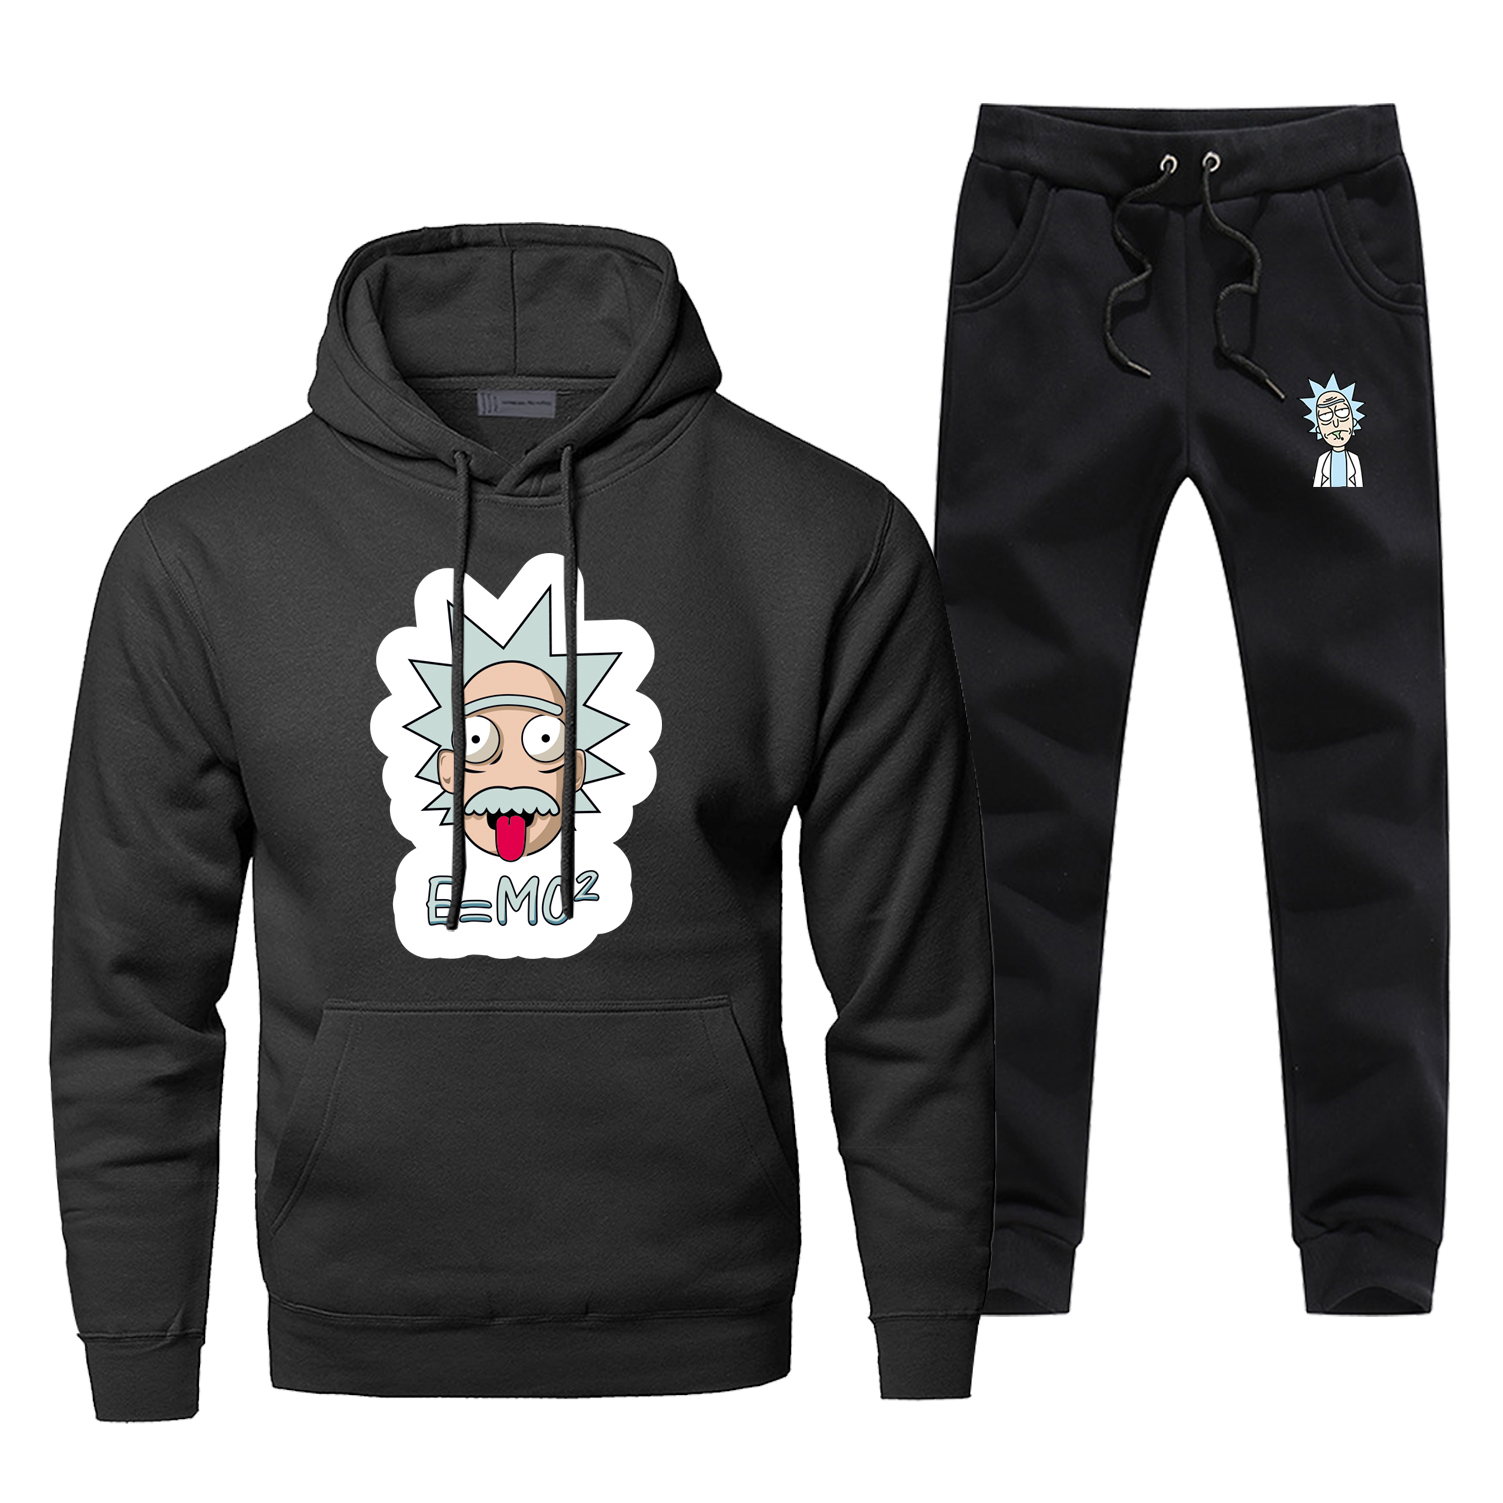 Funny Einstein E MC2 Men's Hoodies Fashion Rick And Morty Physics Science Hoodies Pants Sets Men Casual Sweatshirt Sportswear